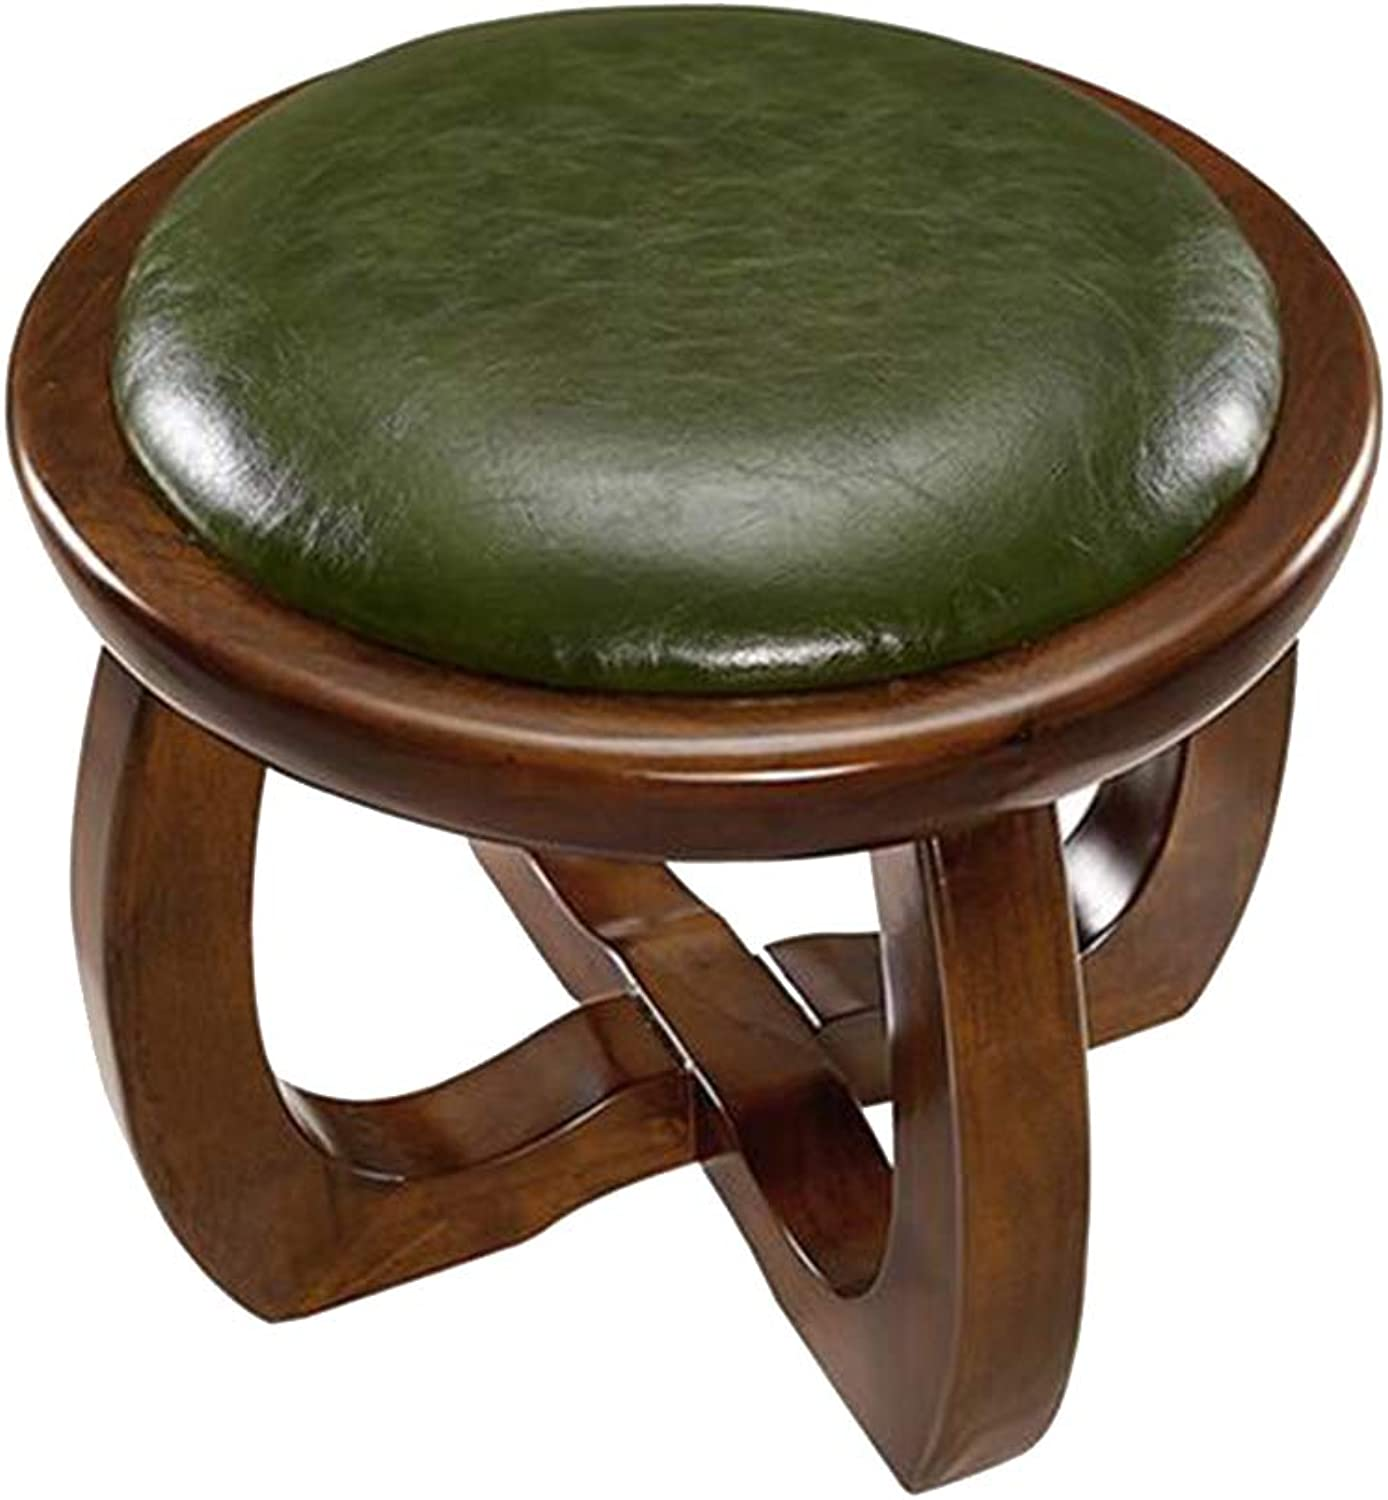 Stool-Make-up, living room solid wood sofa bench, home retro shoe bench artificial leather small